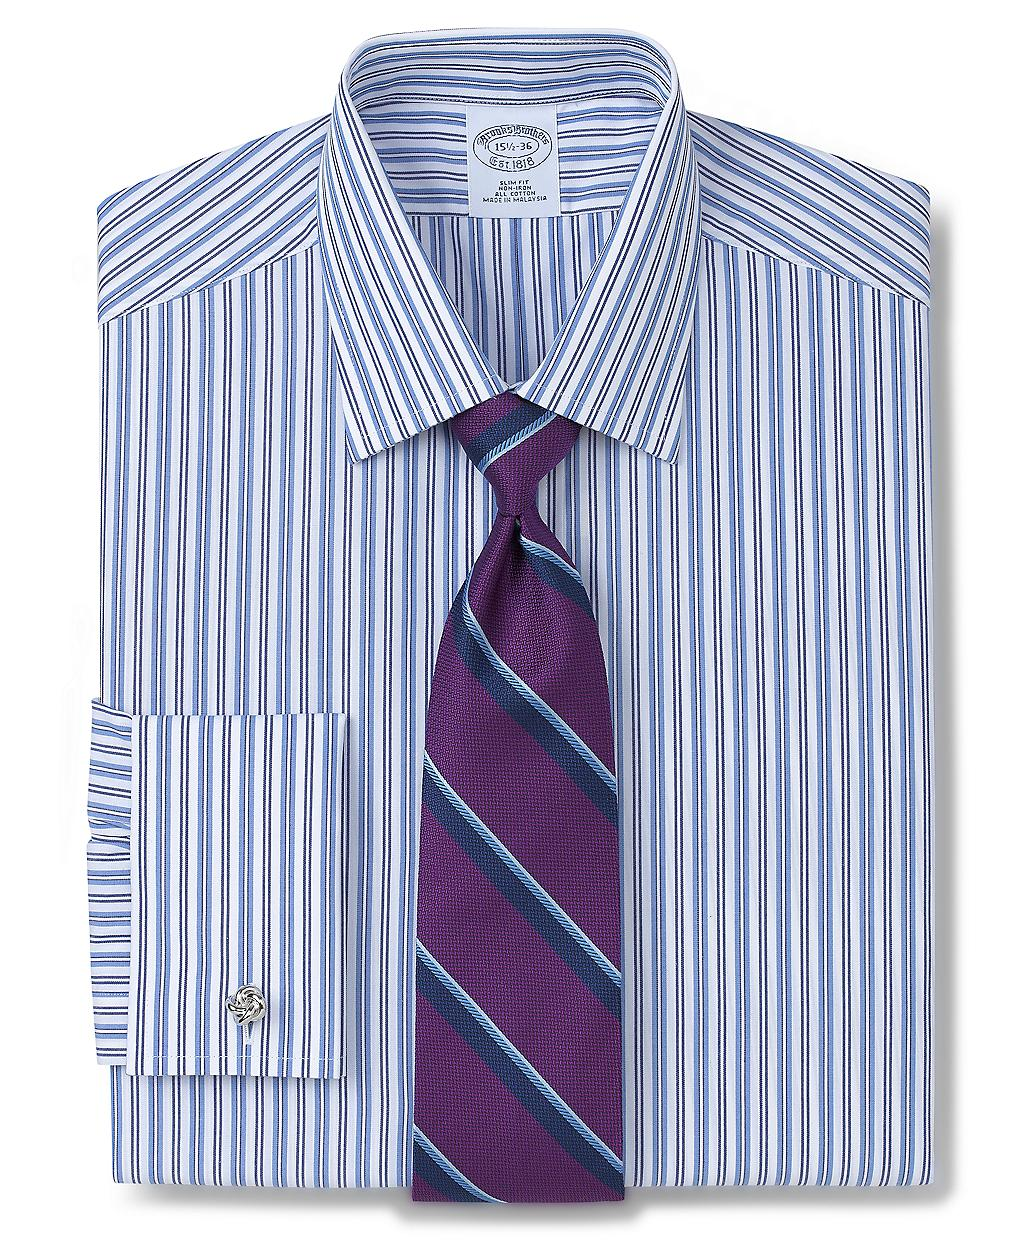 Brooks Brothers Allcotton Noniron Slim Fit Alternating